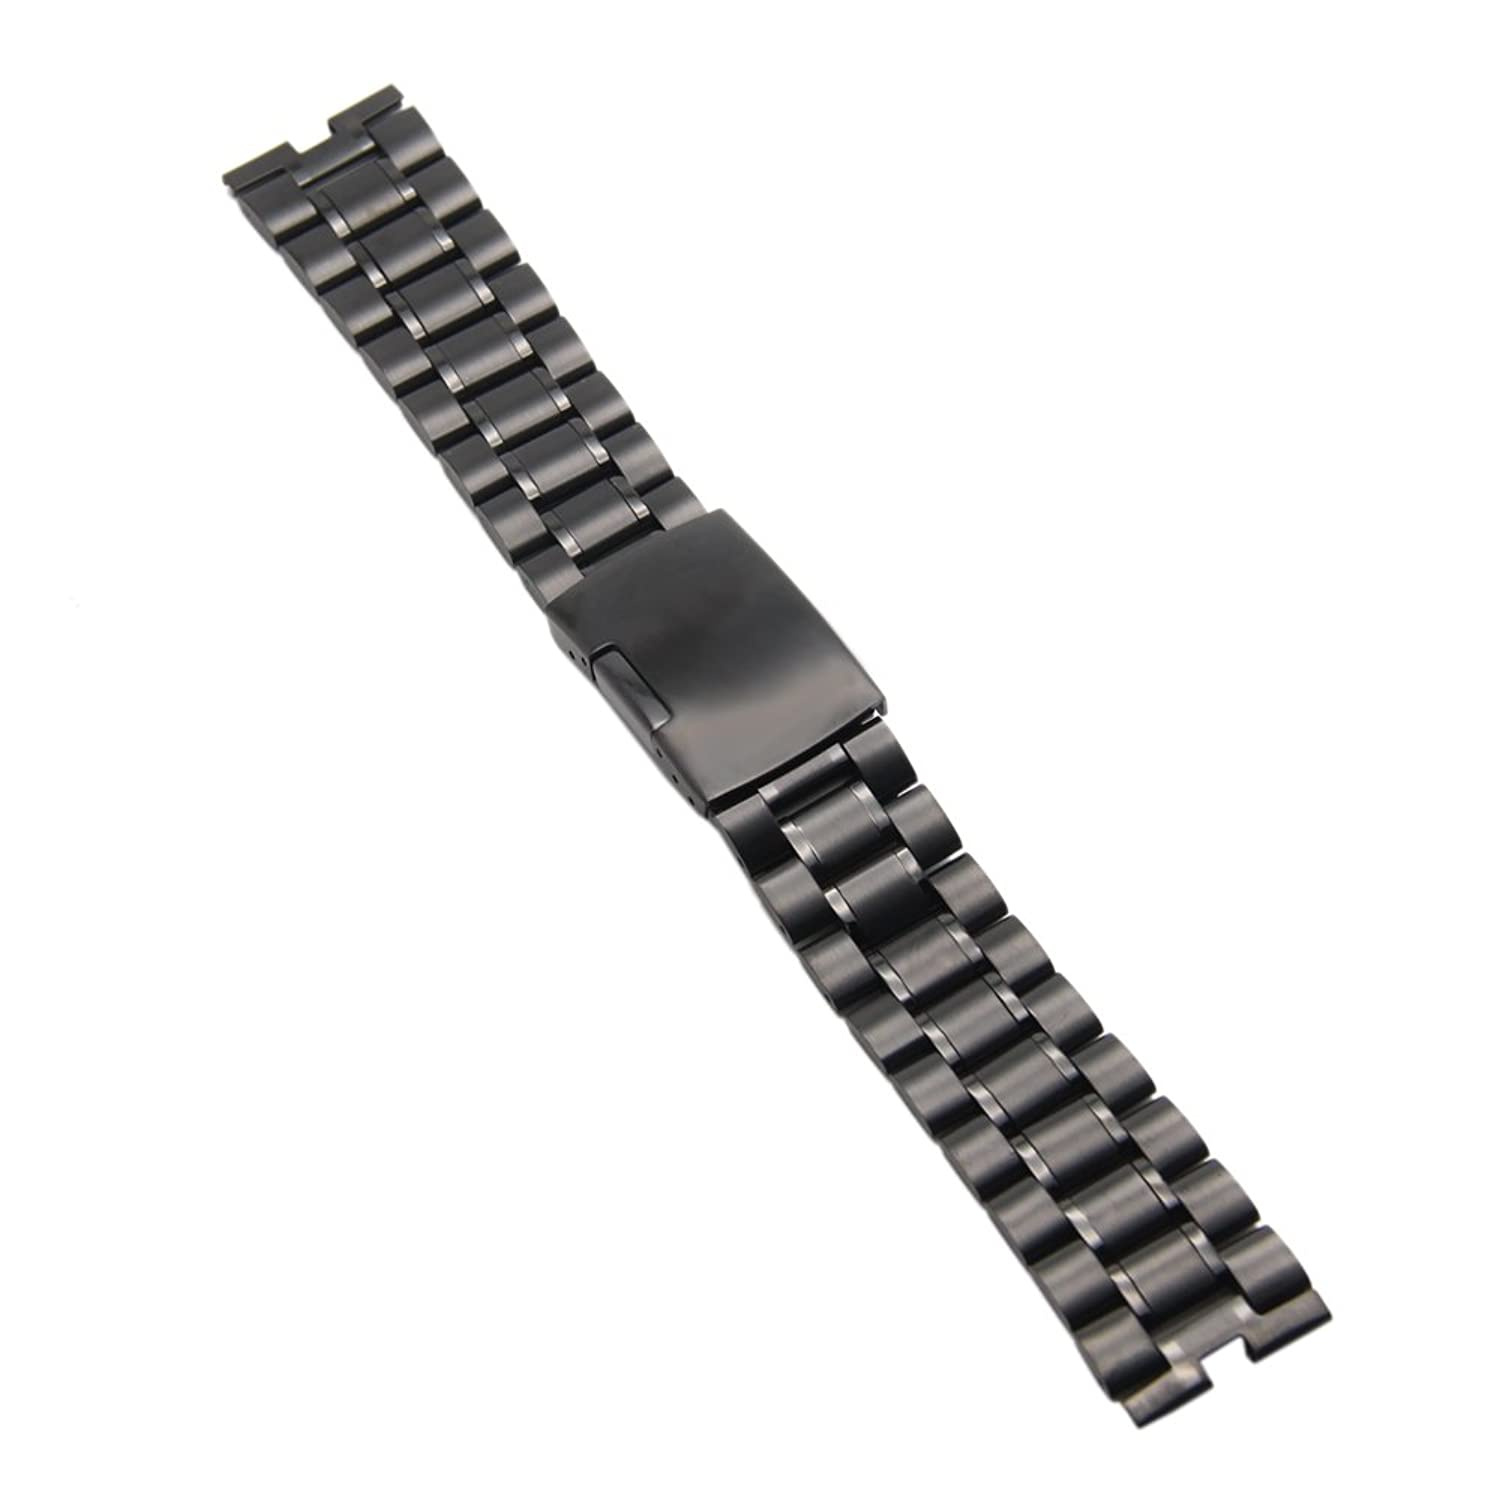 Ritche Black Stainless Watch Band Strap Replacement for Motorola Moto 360 Smartwatch Screen Protector